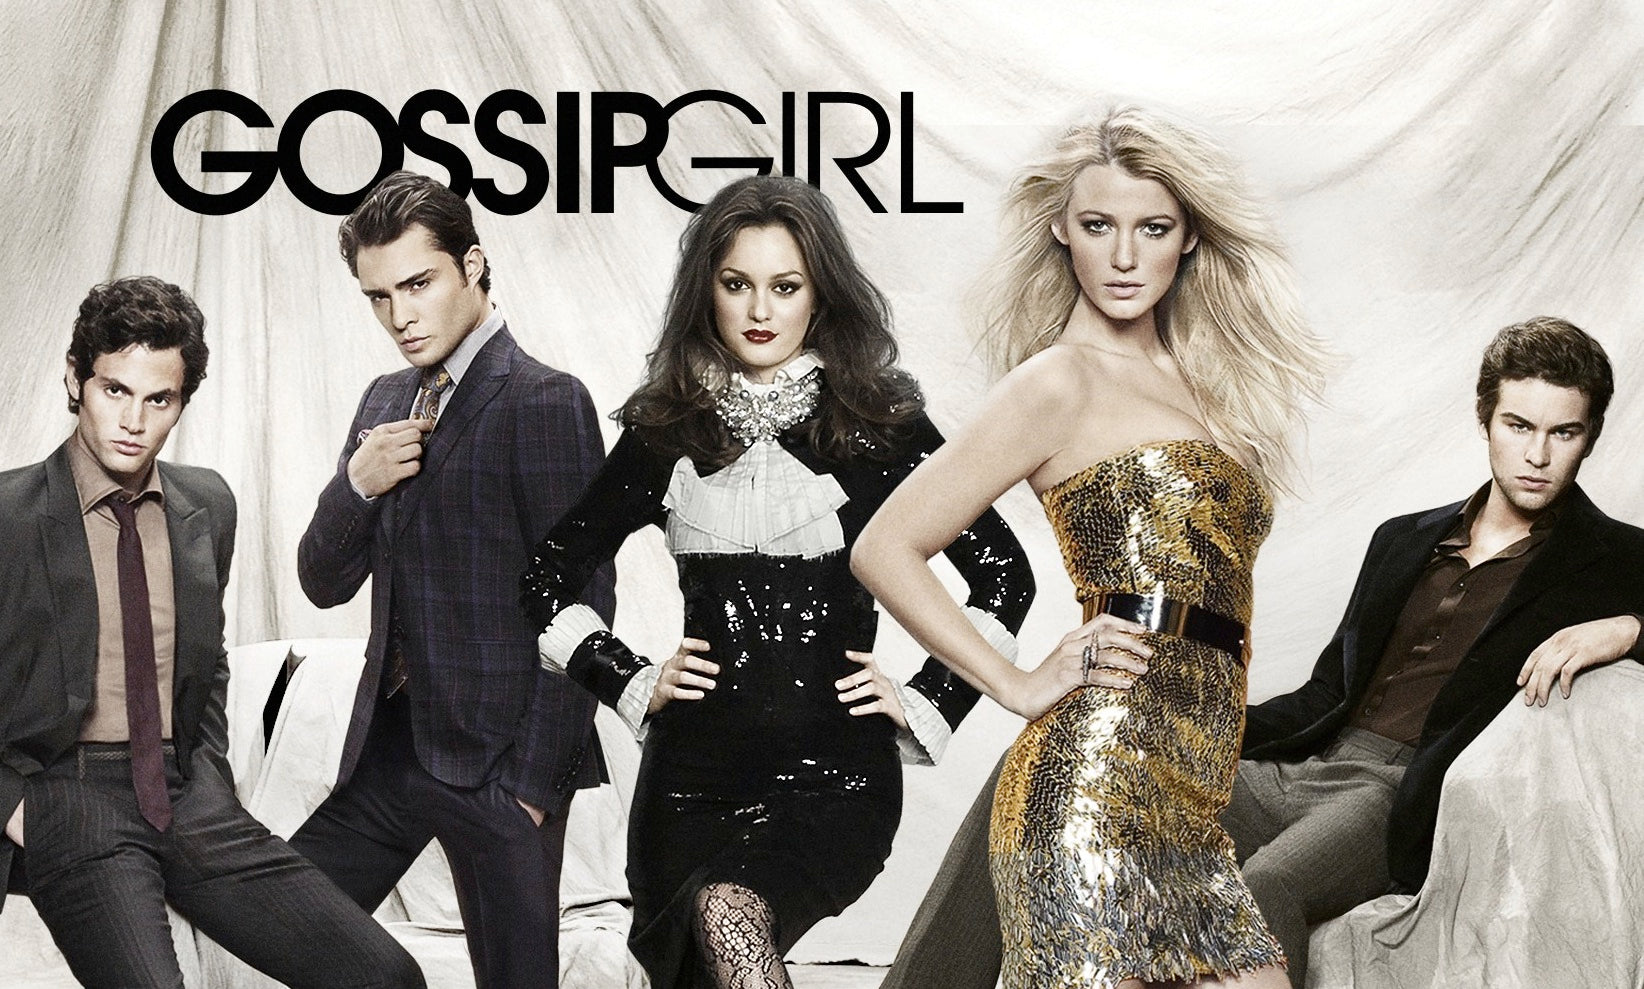 Gossip Girl: The Complete Series - Seasons 1-6